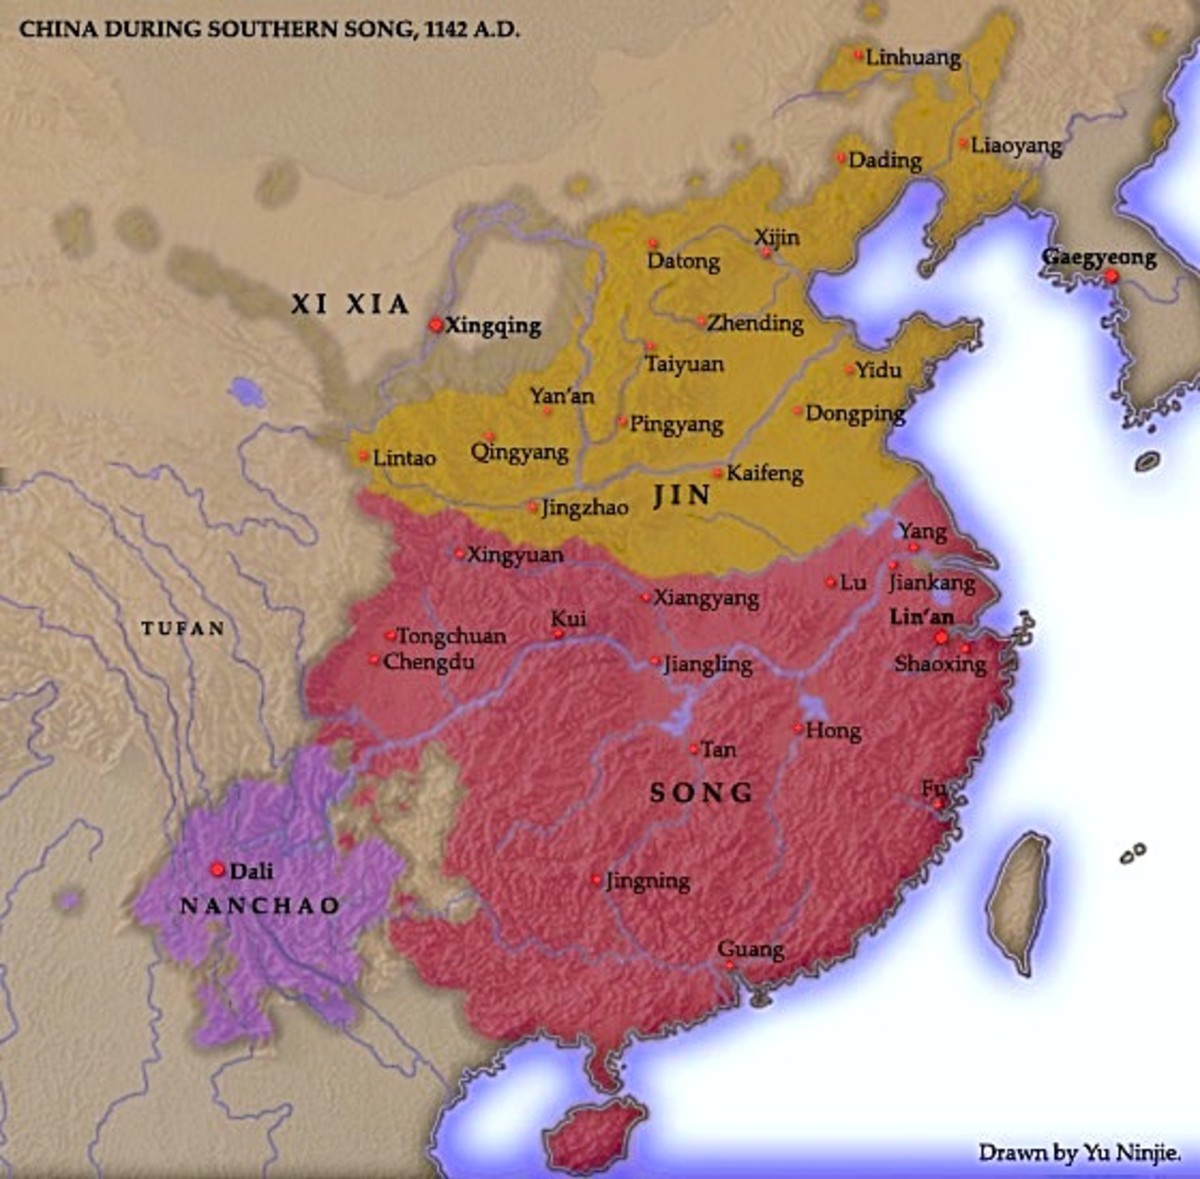 The new distribution of Chinese territory after the fall of the Northern Song to Jurchen invasion.